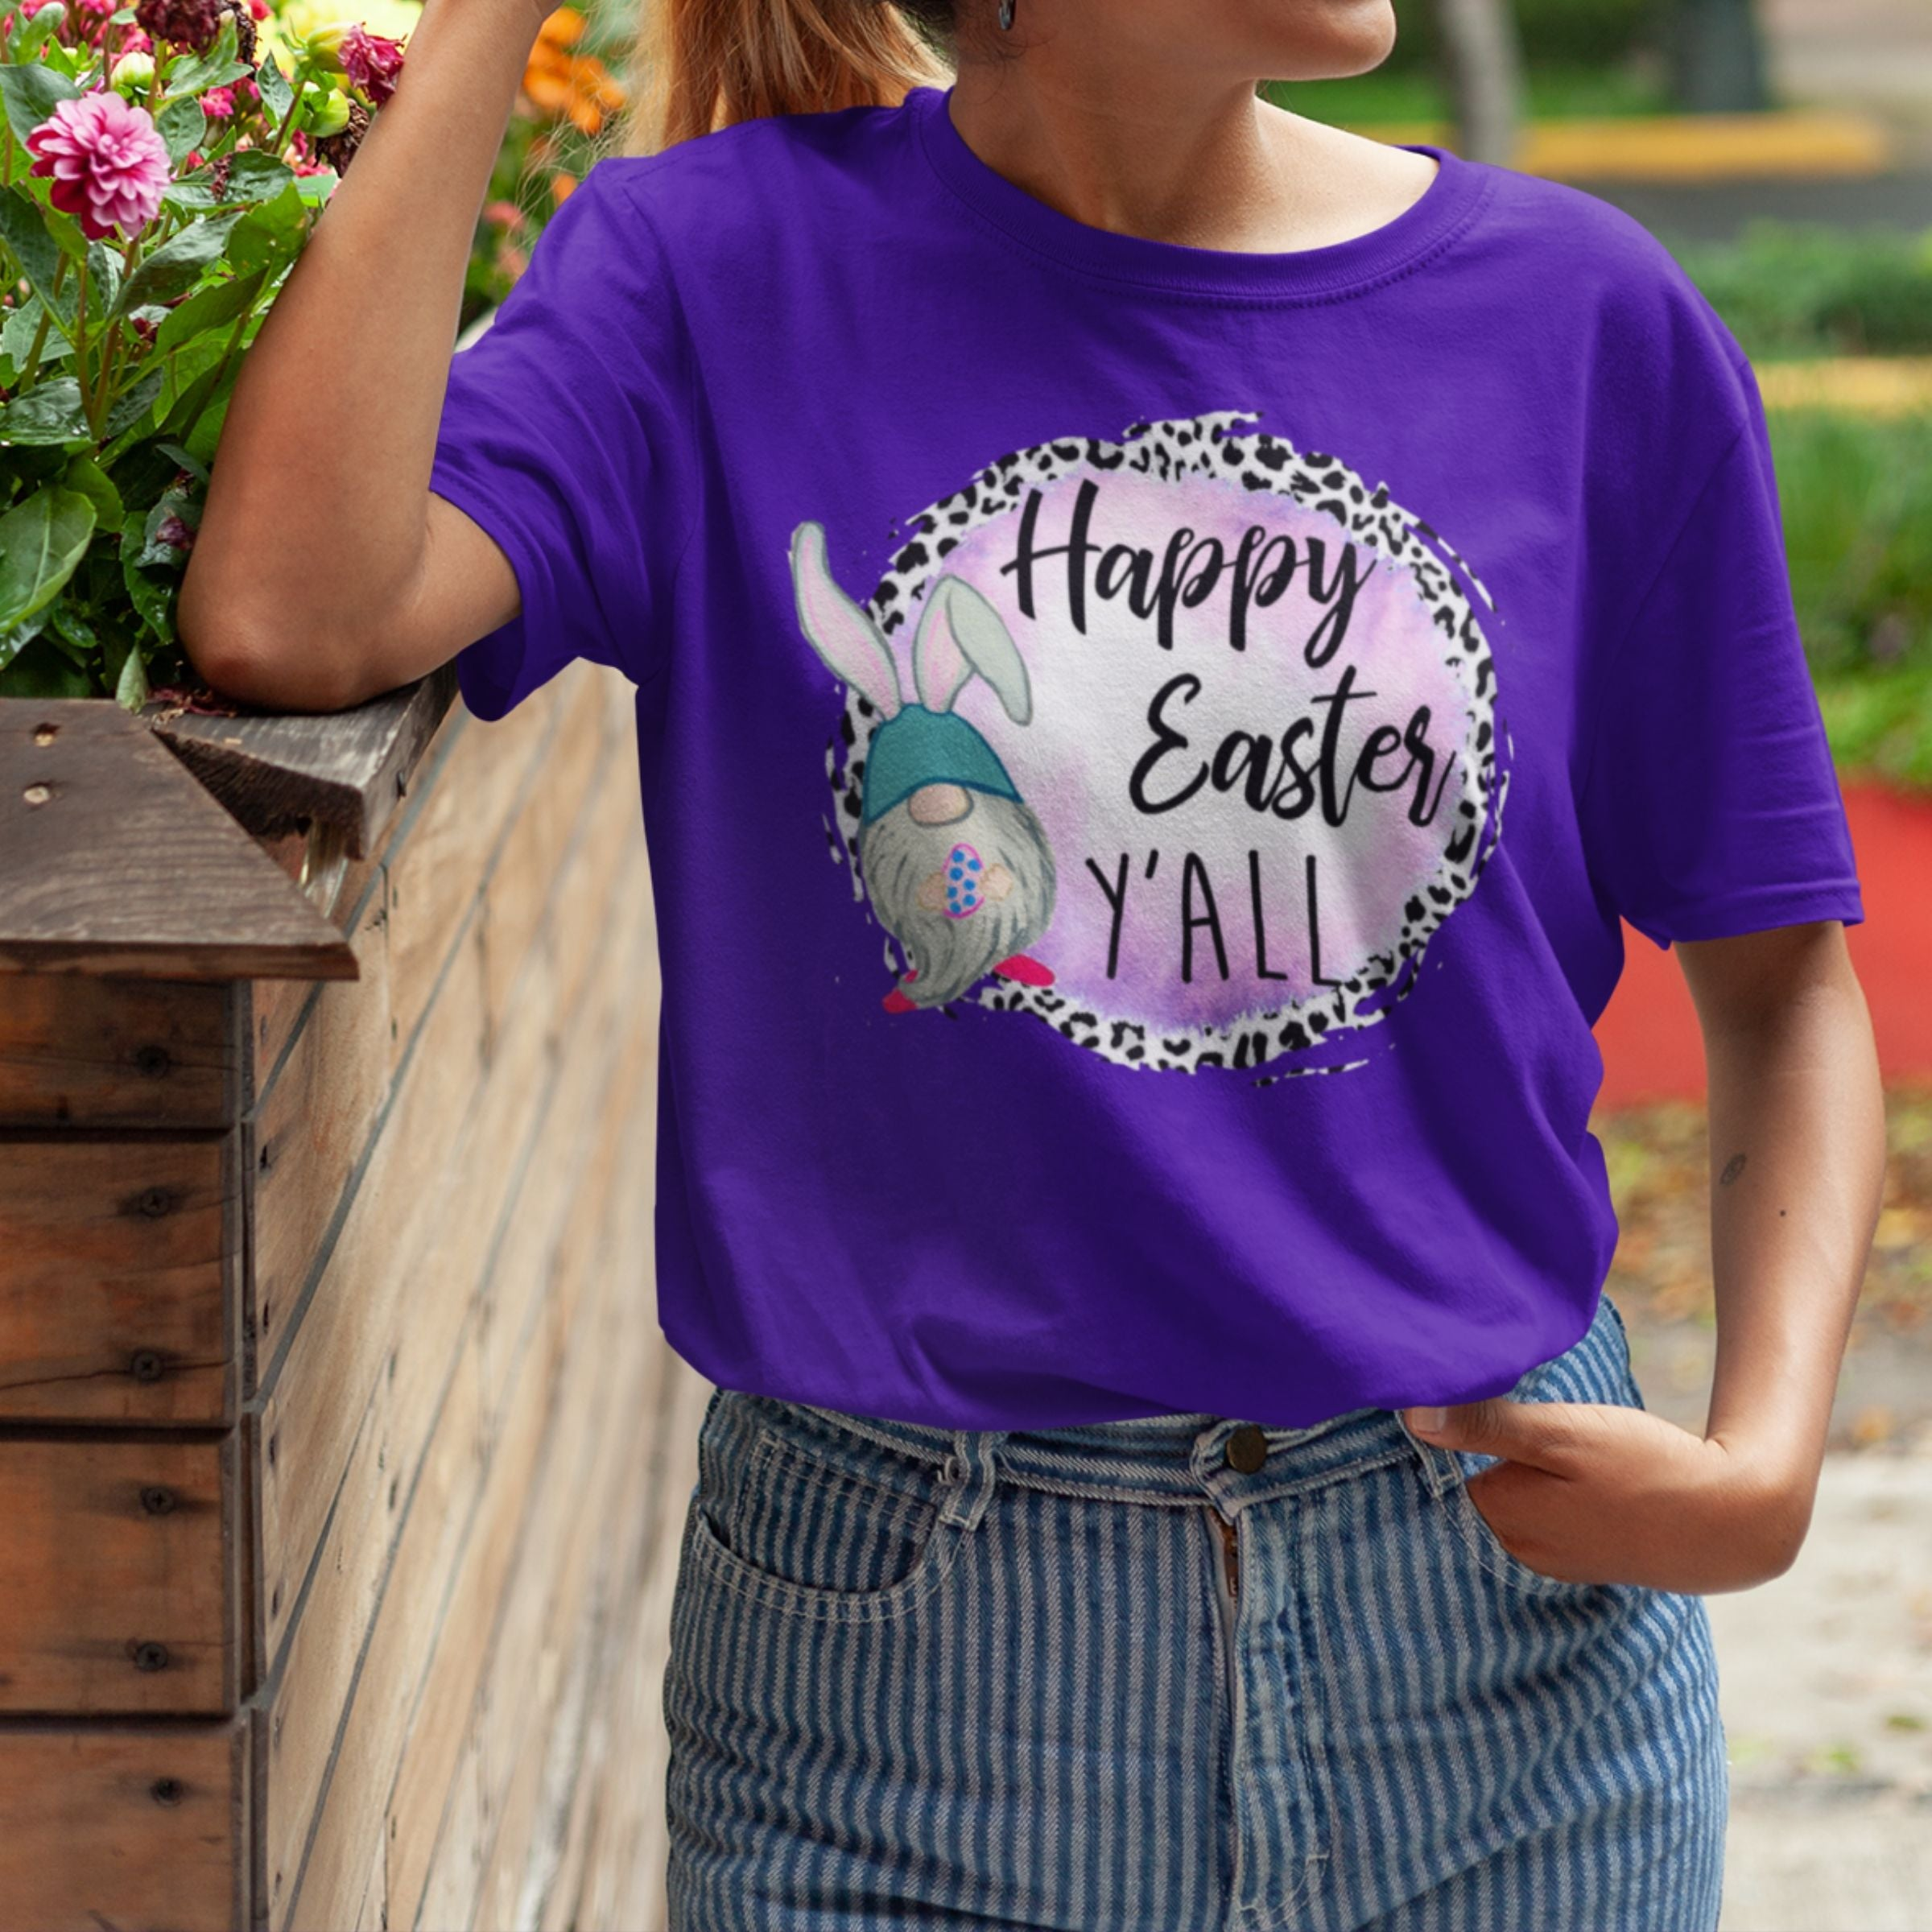 Happy Easter Y'all T-Shirt - Adults